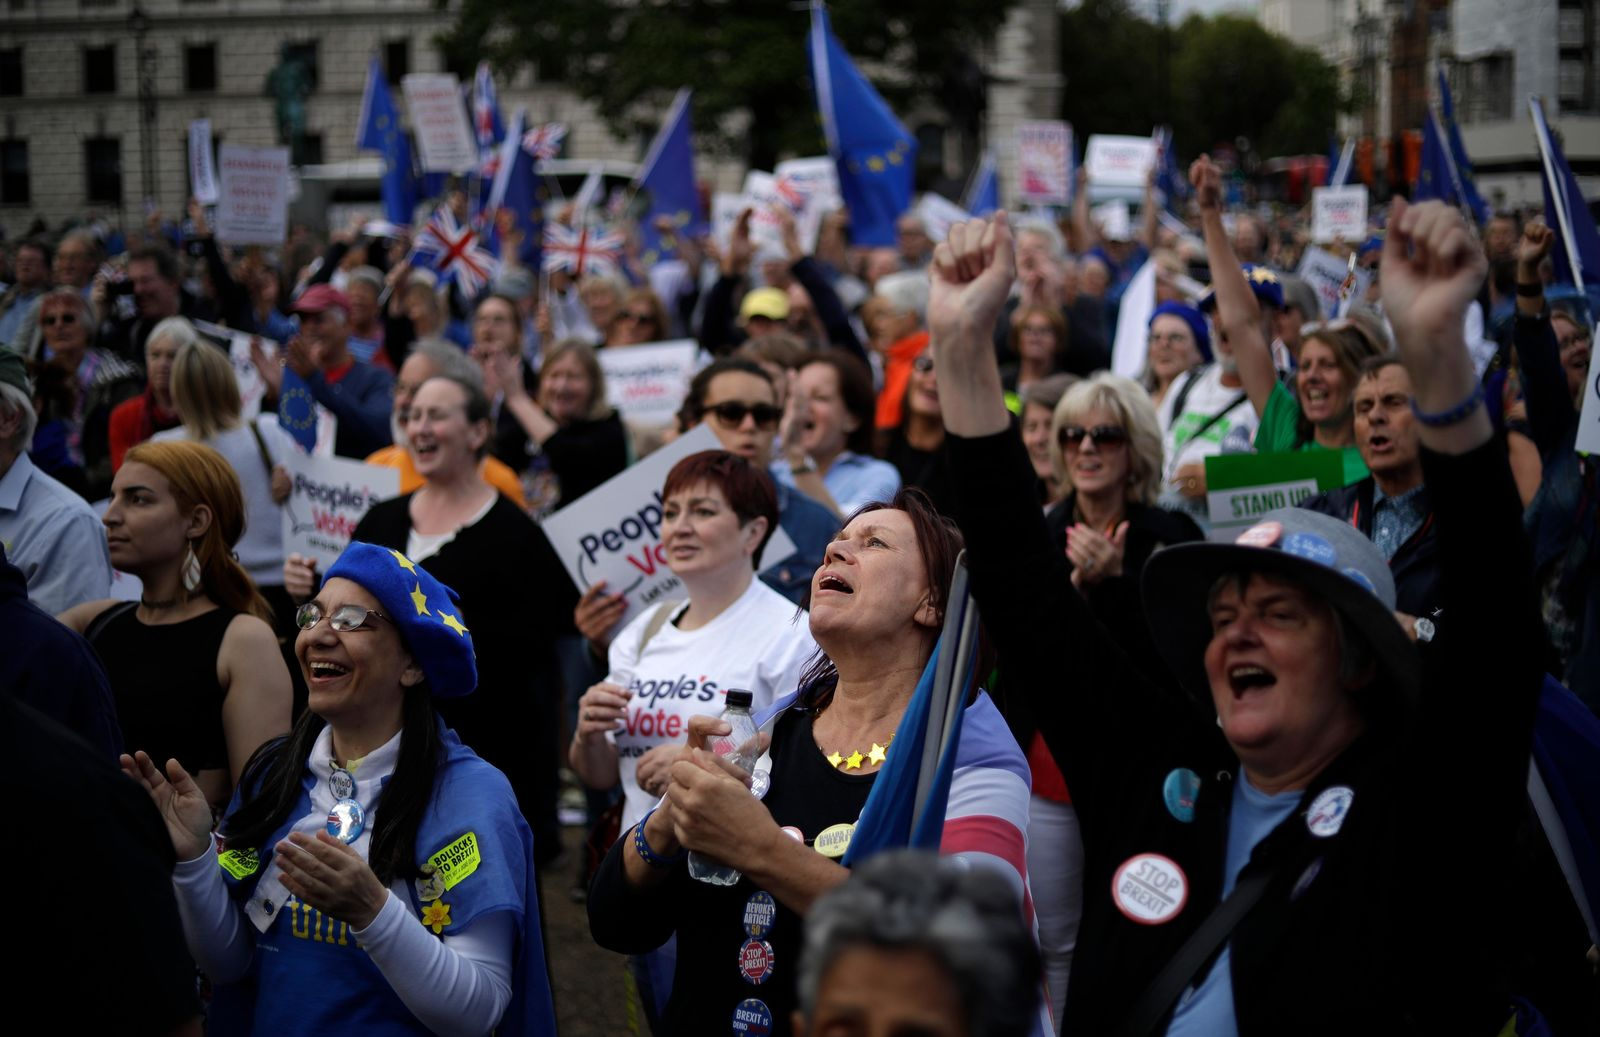 Remain supporters wave EU and Union flags as they demonstrate on Parliament Square in London, Wednesday, Sept. 4, 2019. (AP Photo/Matt Dunham)